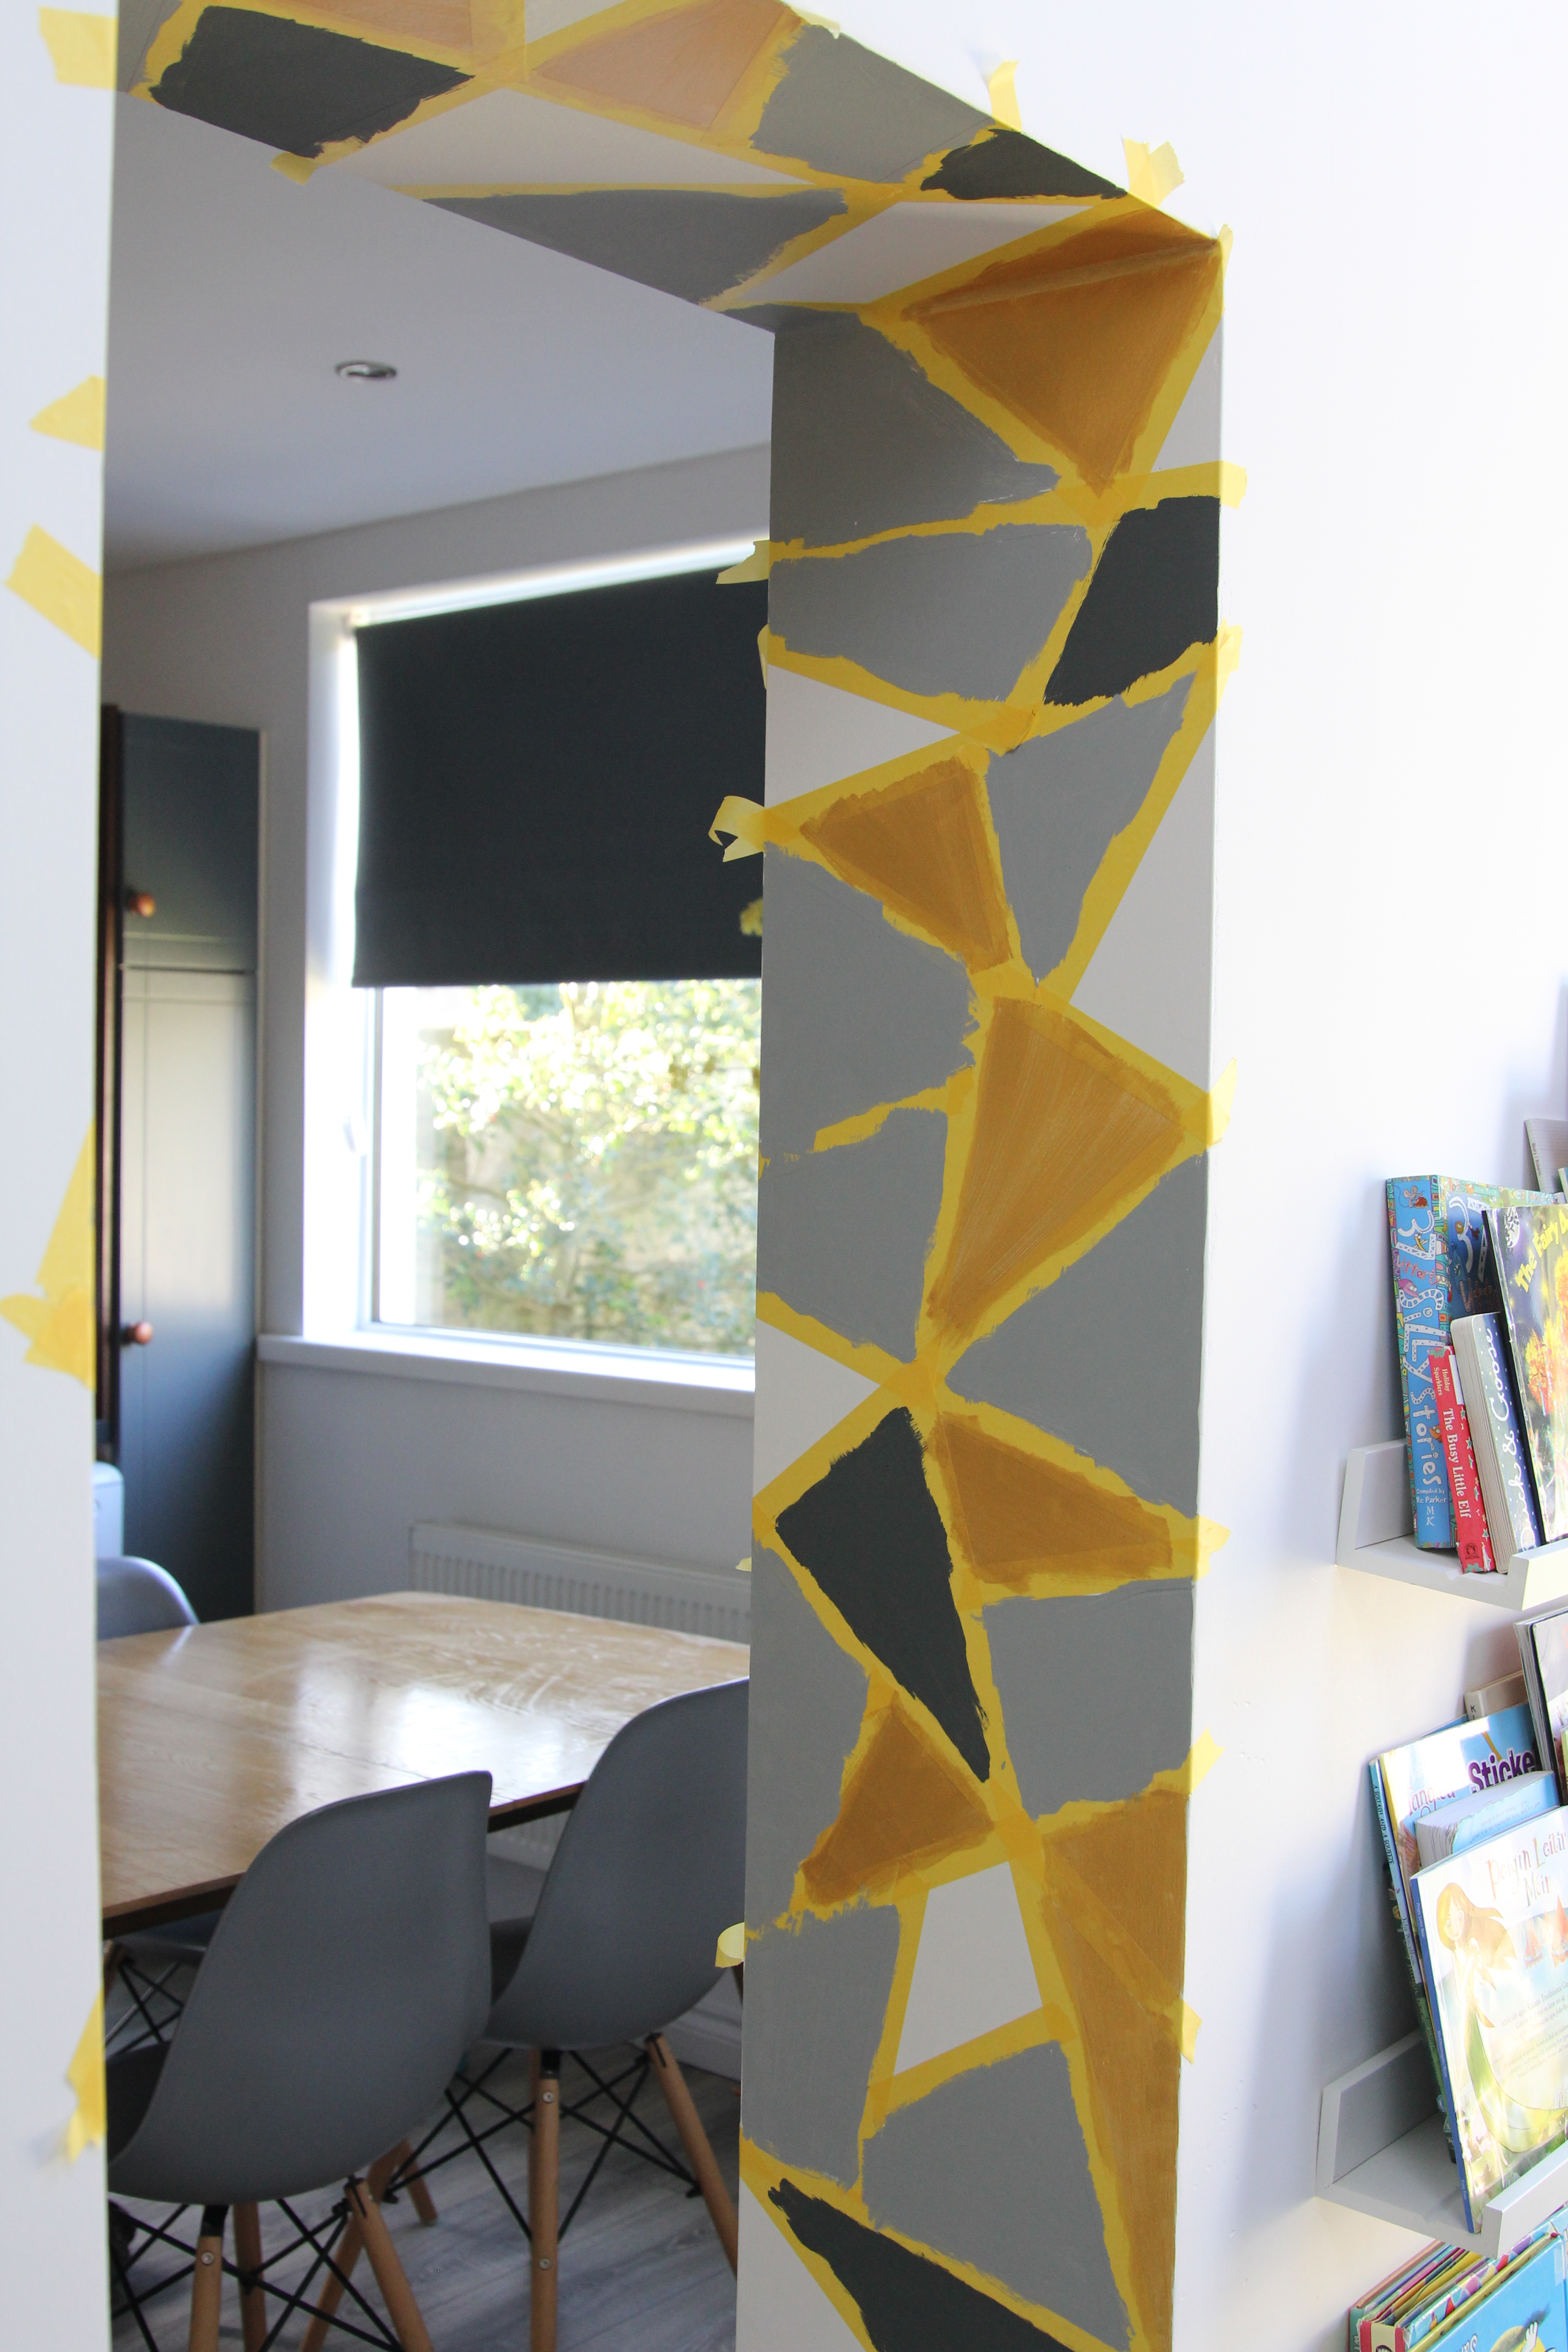 Paint and frog tape on geometric wall